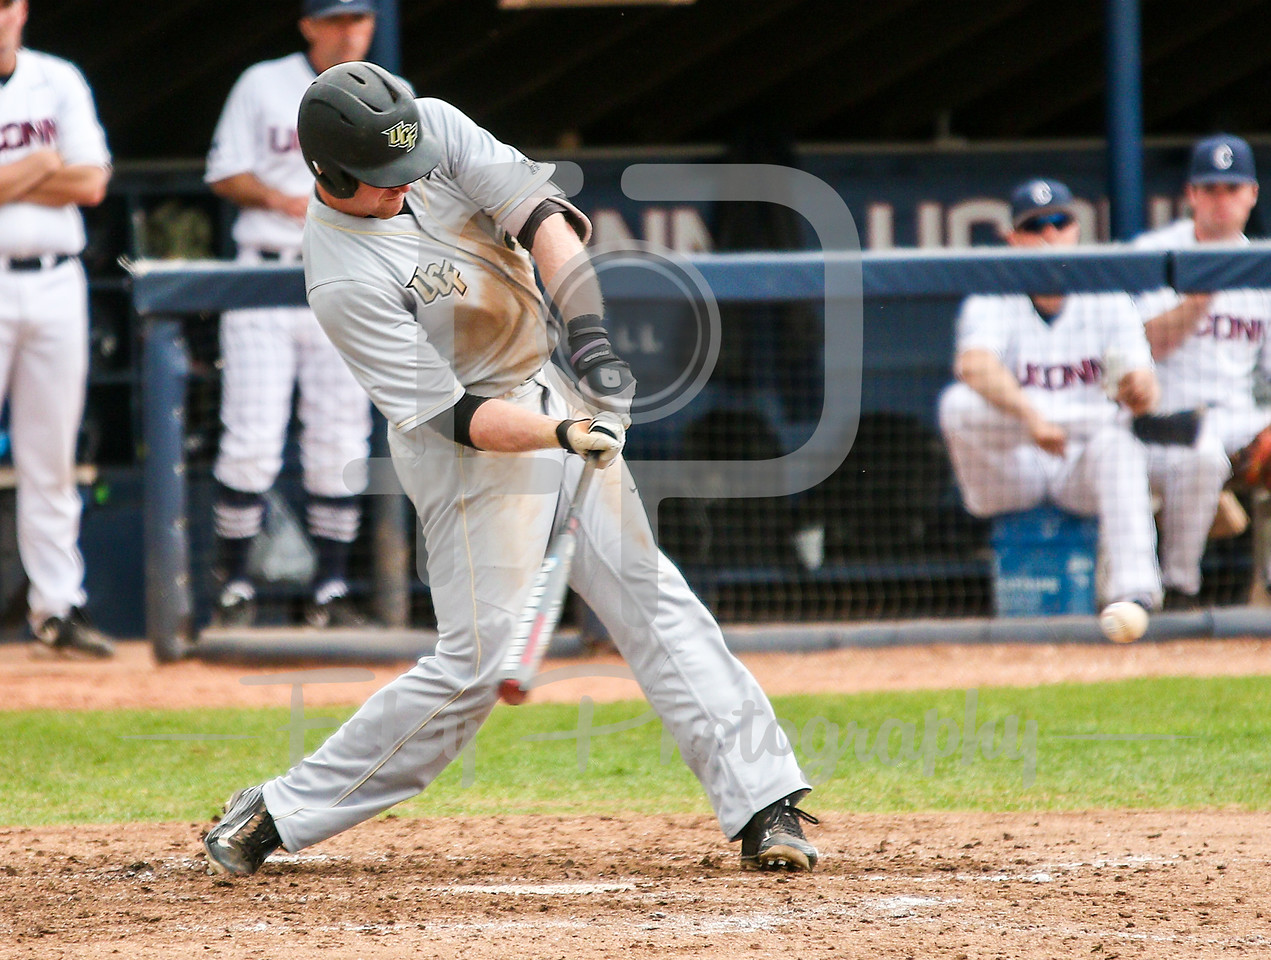 5/13/16 Storrs Connecticut: Central Florida's Eli Putnam swings during an American Athletic Conference matchup. The Huskies defeated the Knights 5-4 at J.O. Christian Field in Storrs, Connecticut.